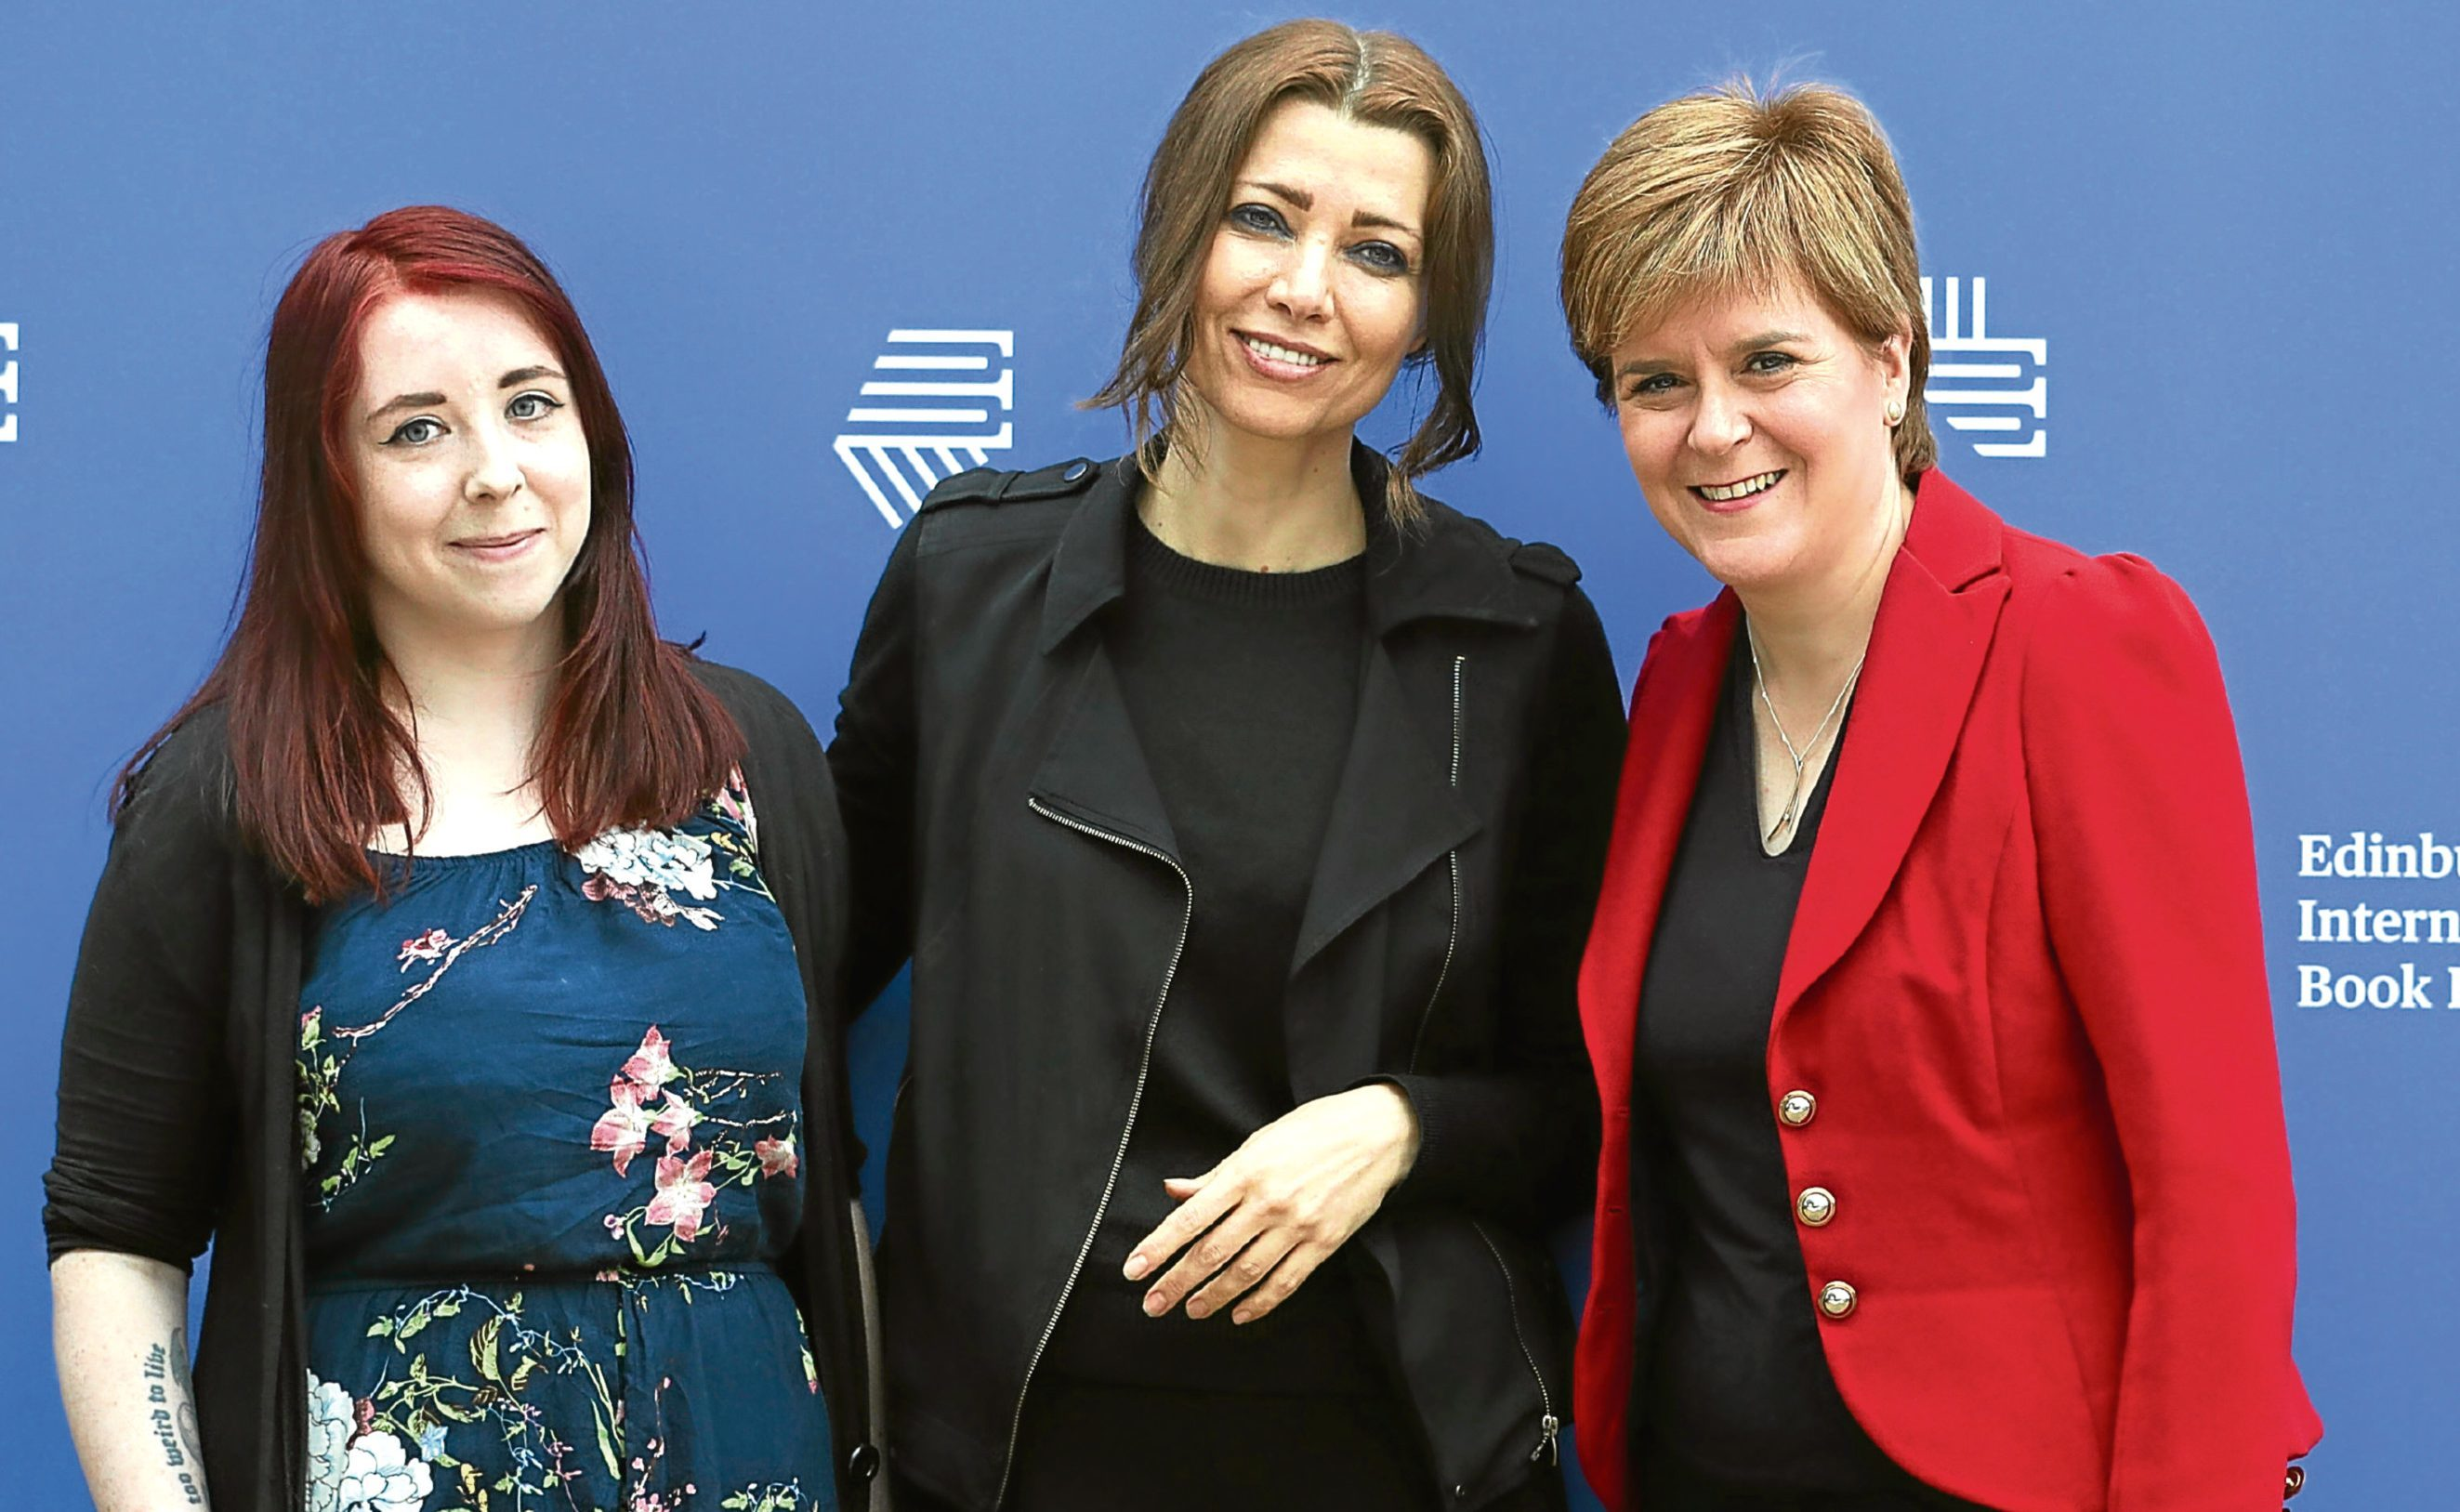 First Minister Nicola Sturgeon with Heather McDaid (left) and Elif Shafak (centre) at the Edinburgh International Book Festival.